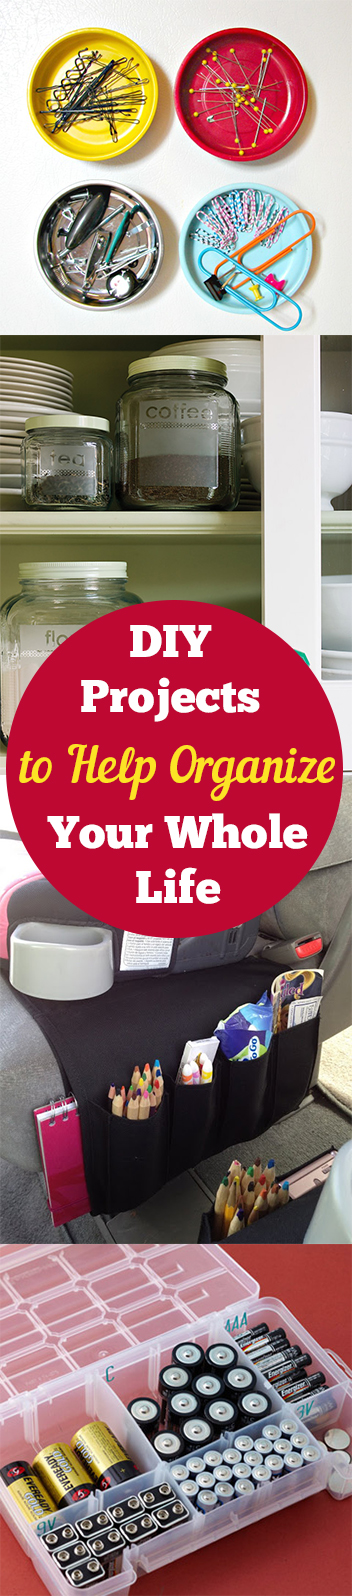 DIY Projects to Help Organize Your Whole Life